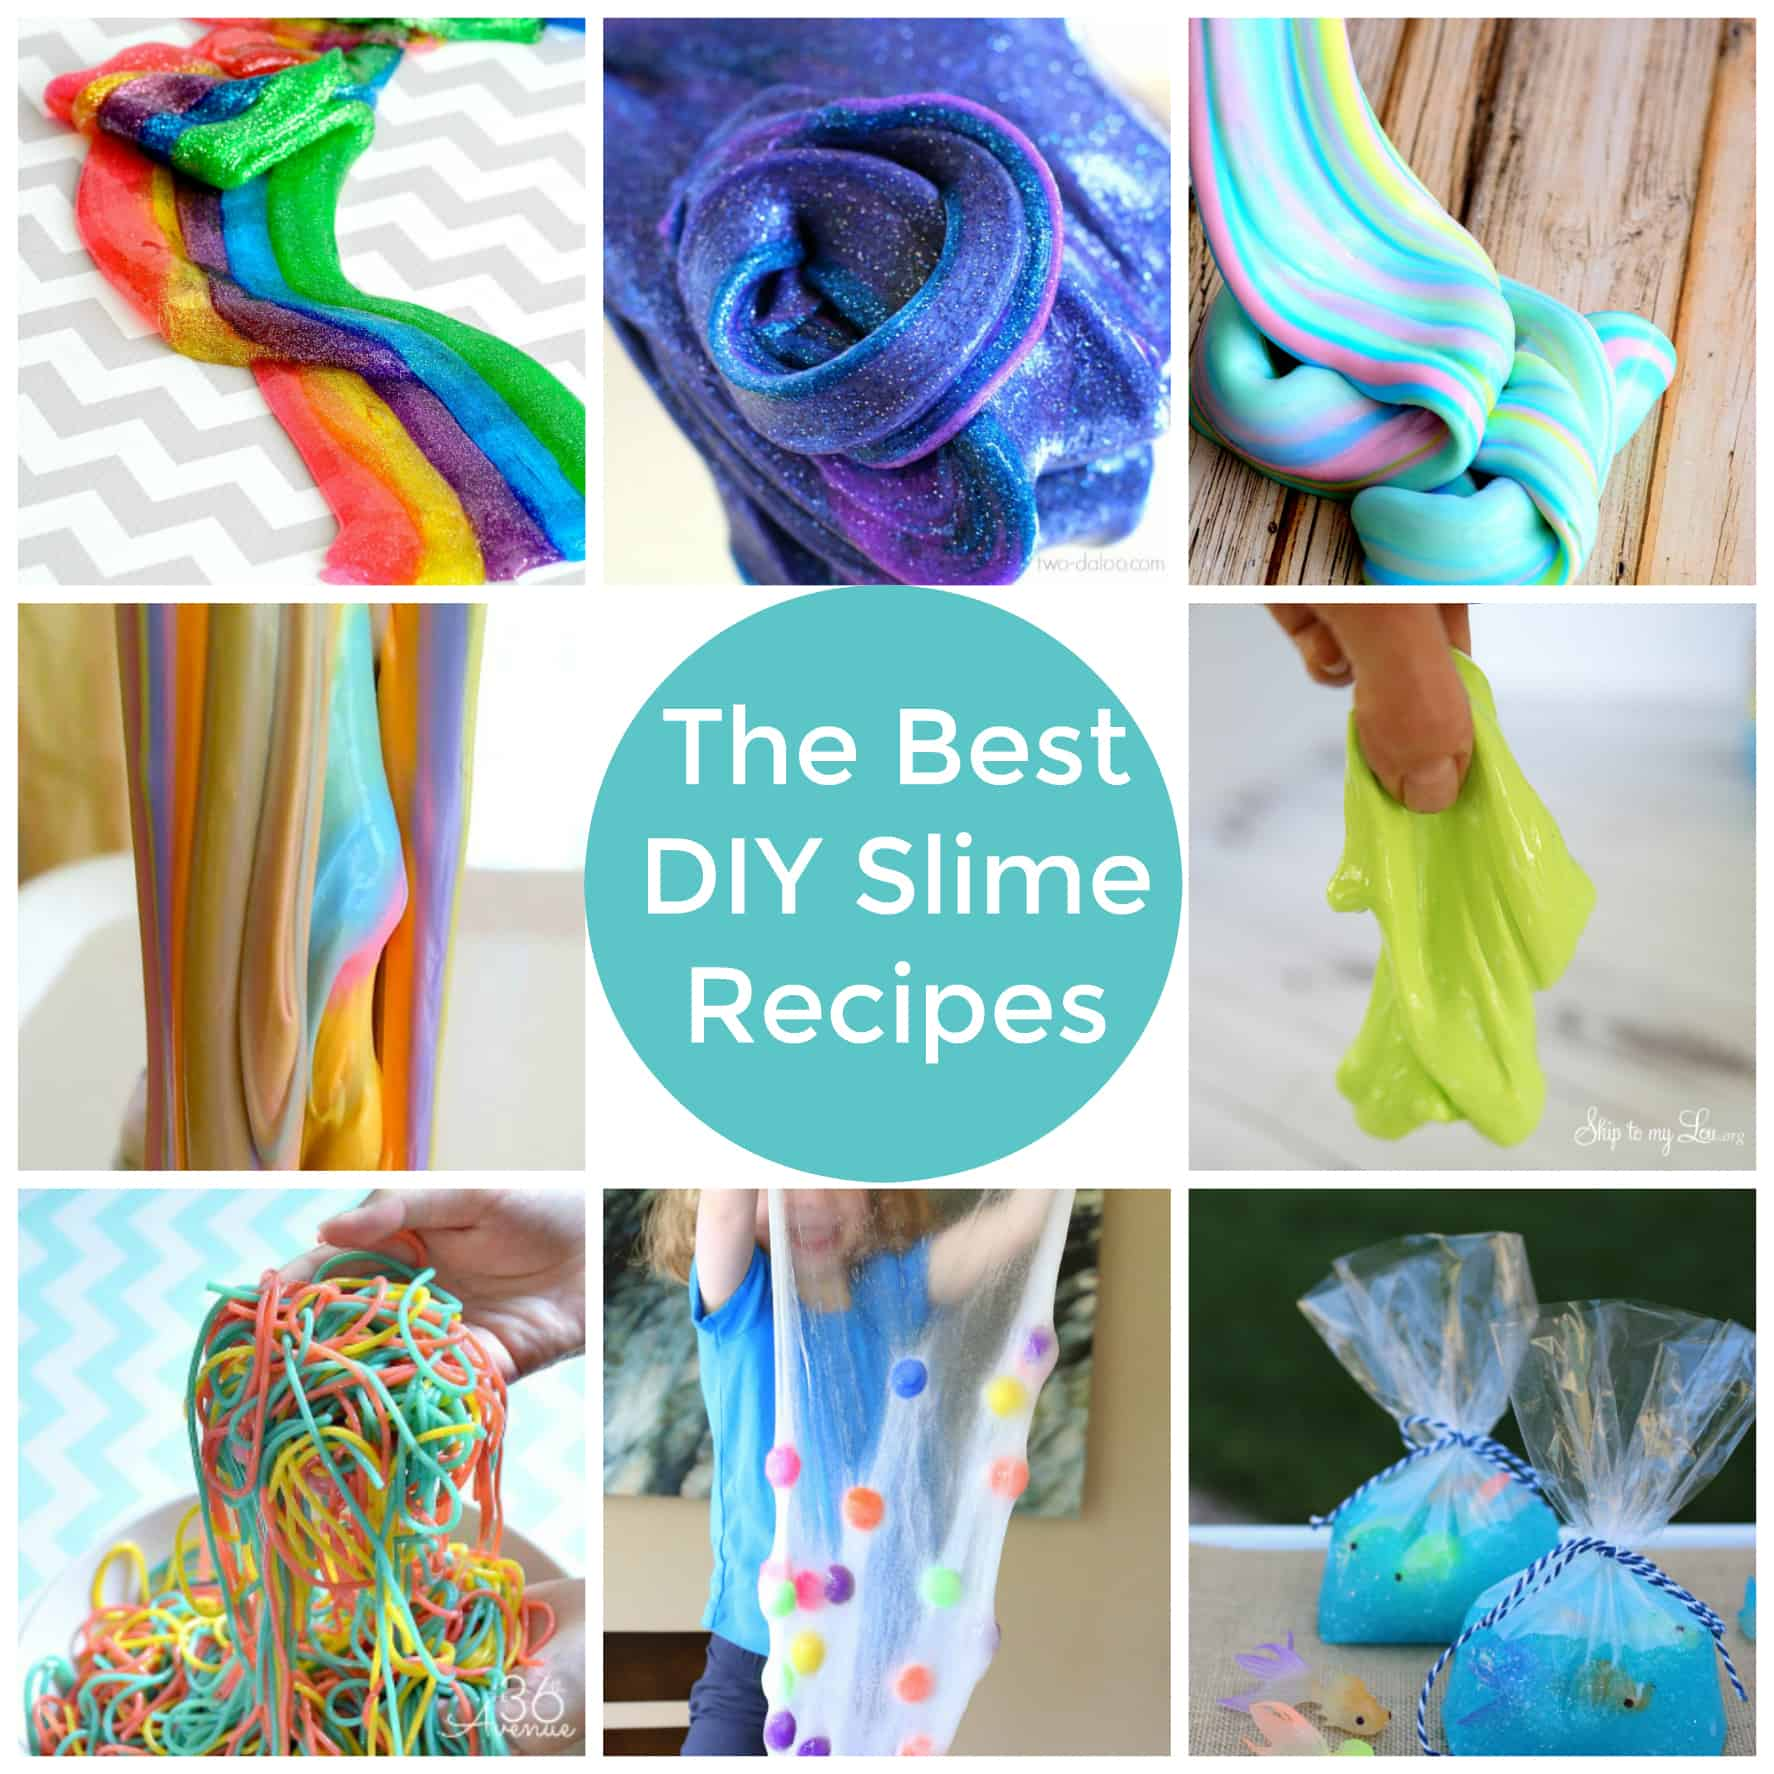 The Best DIY Slime Recipes